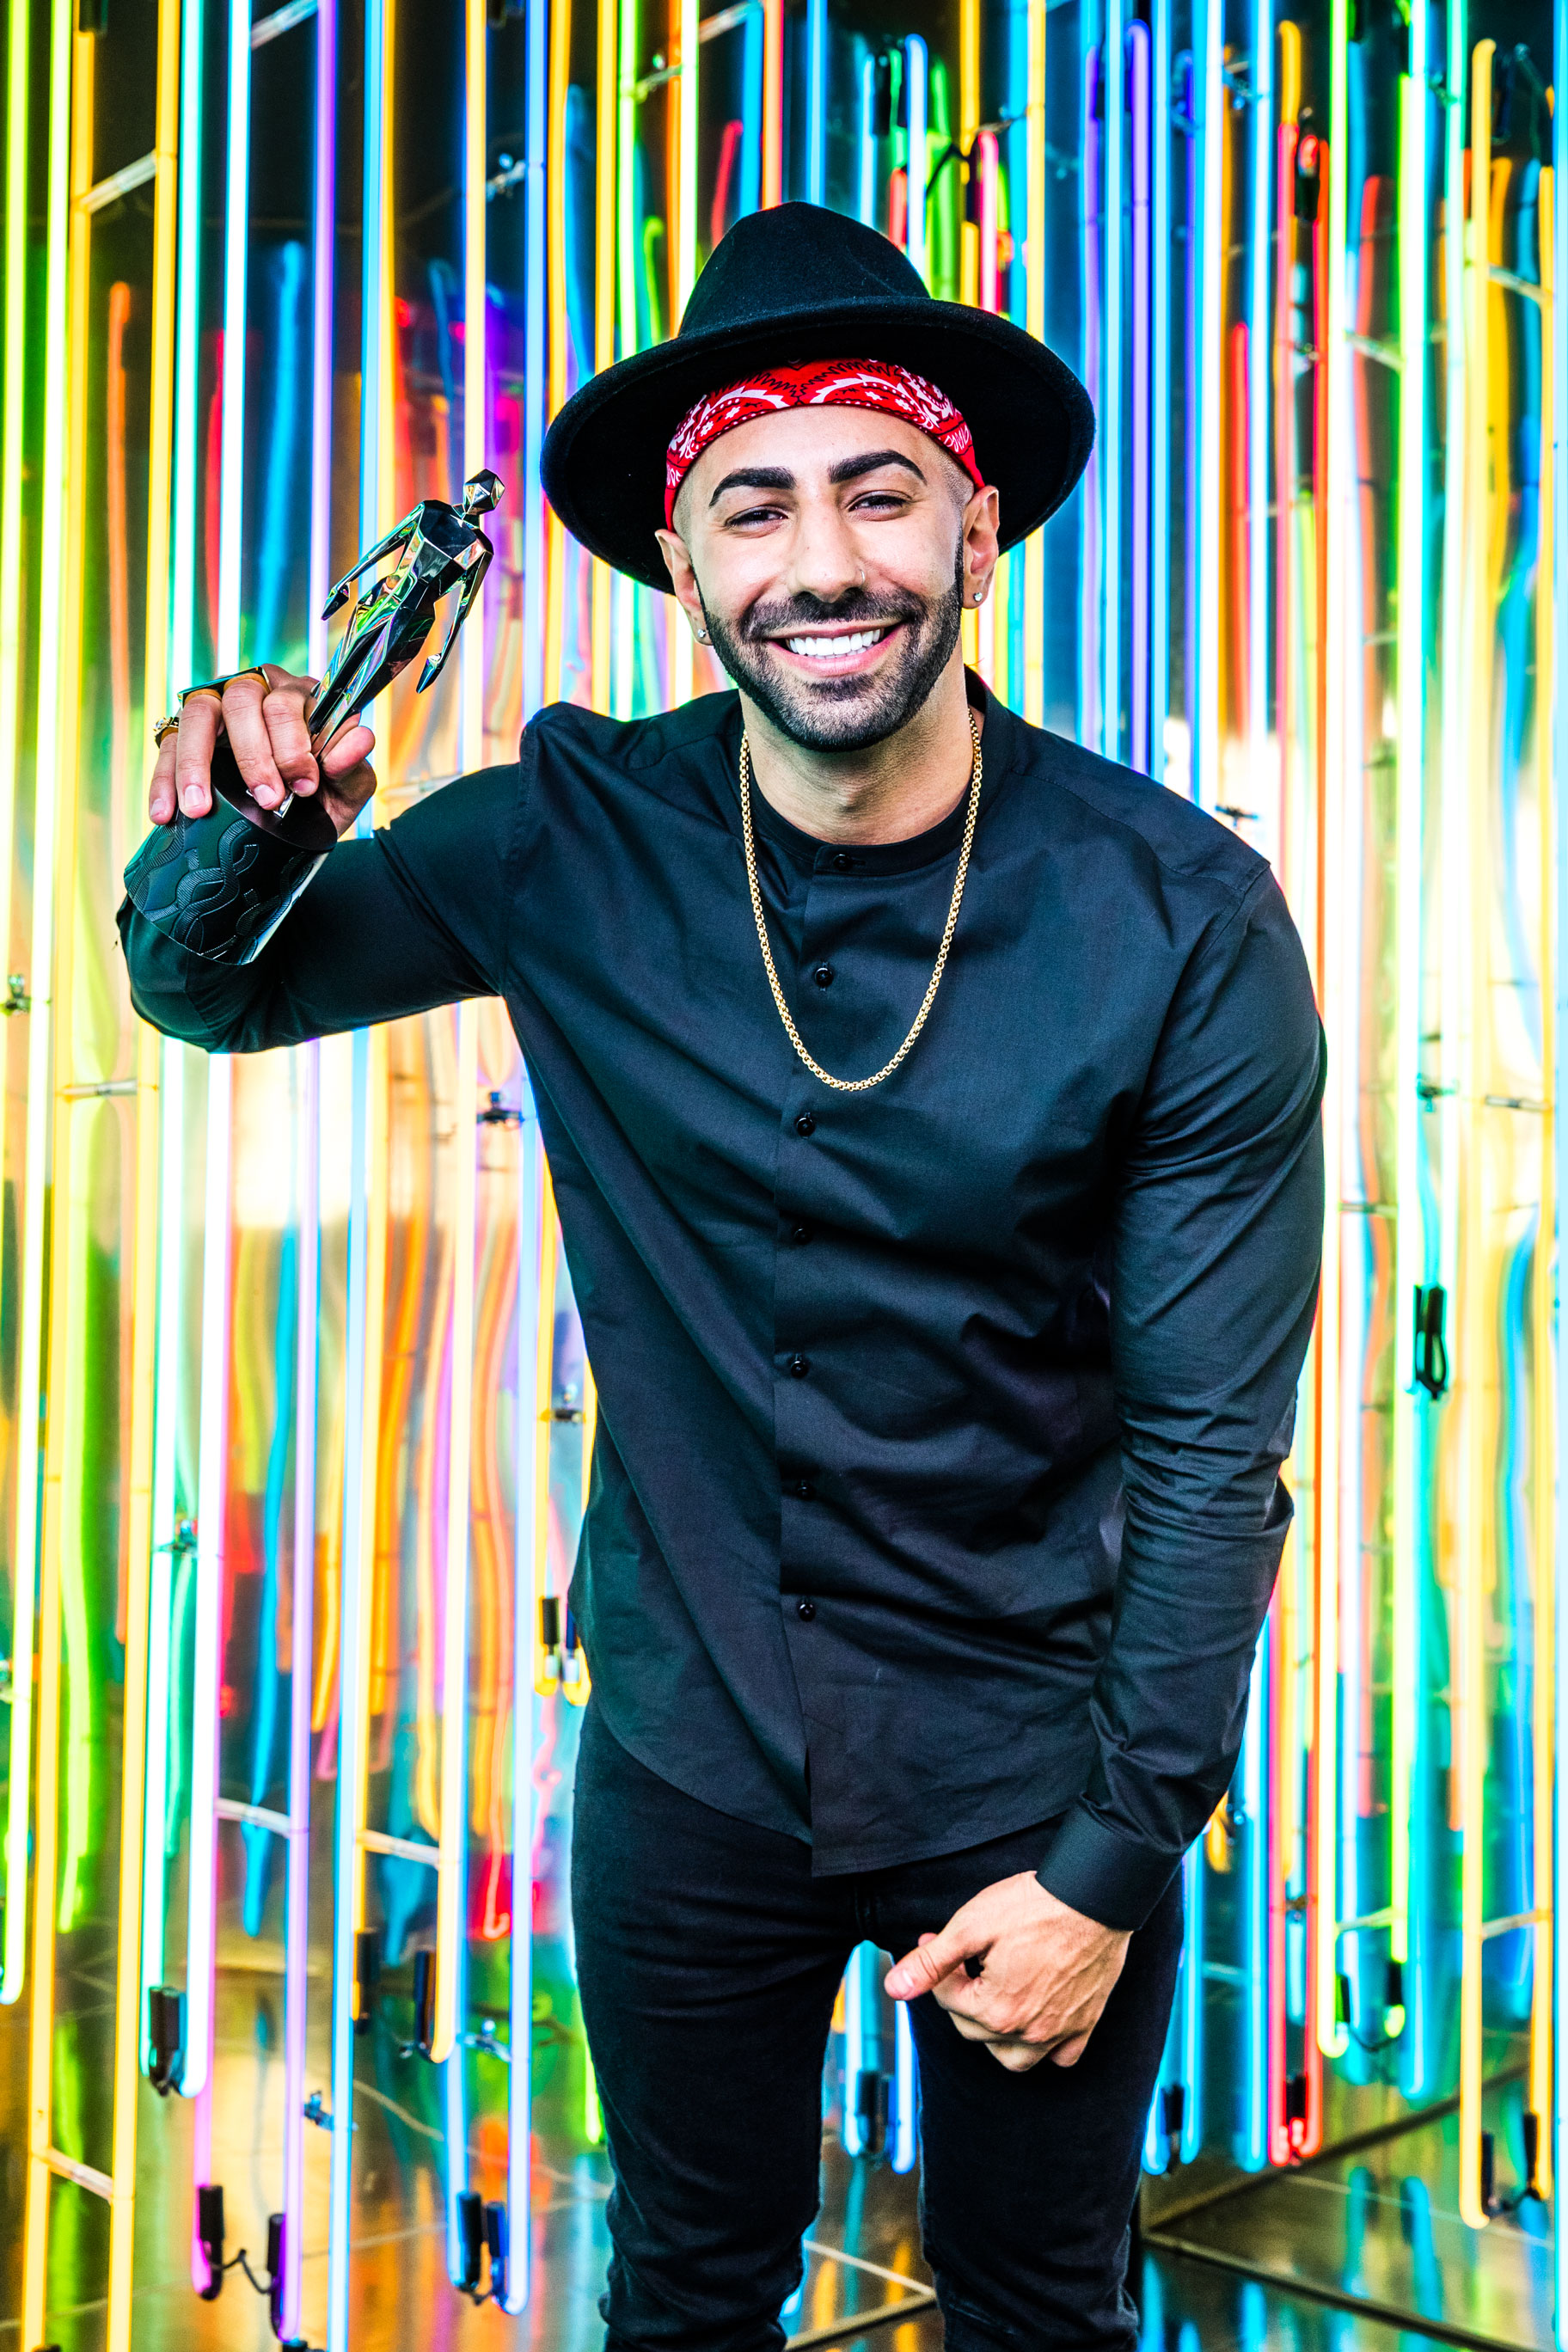 005_3781_FOUSEYTUBE_Photos_by_marcroyce_v1